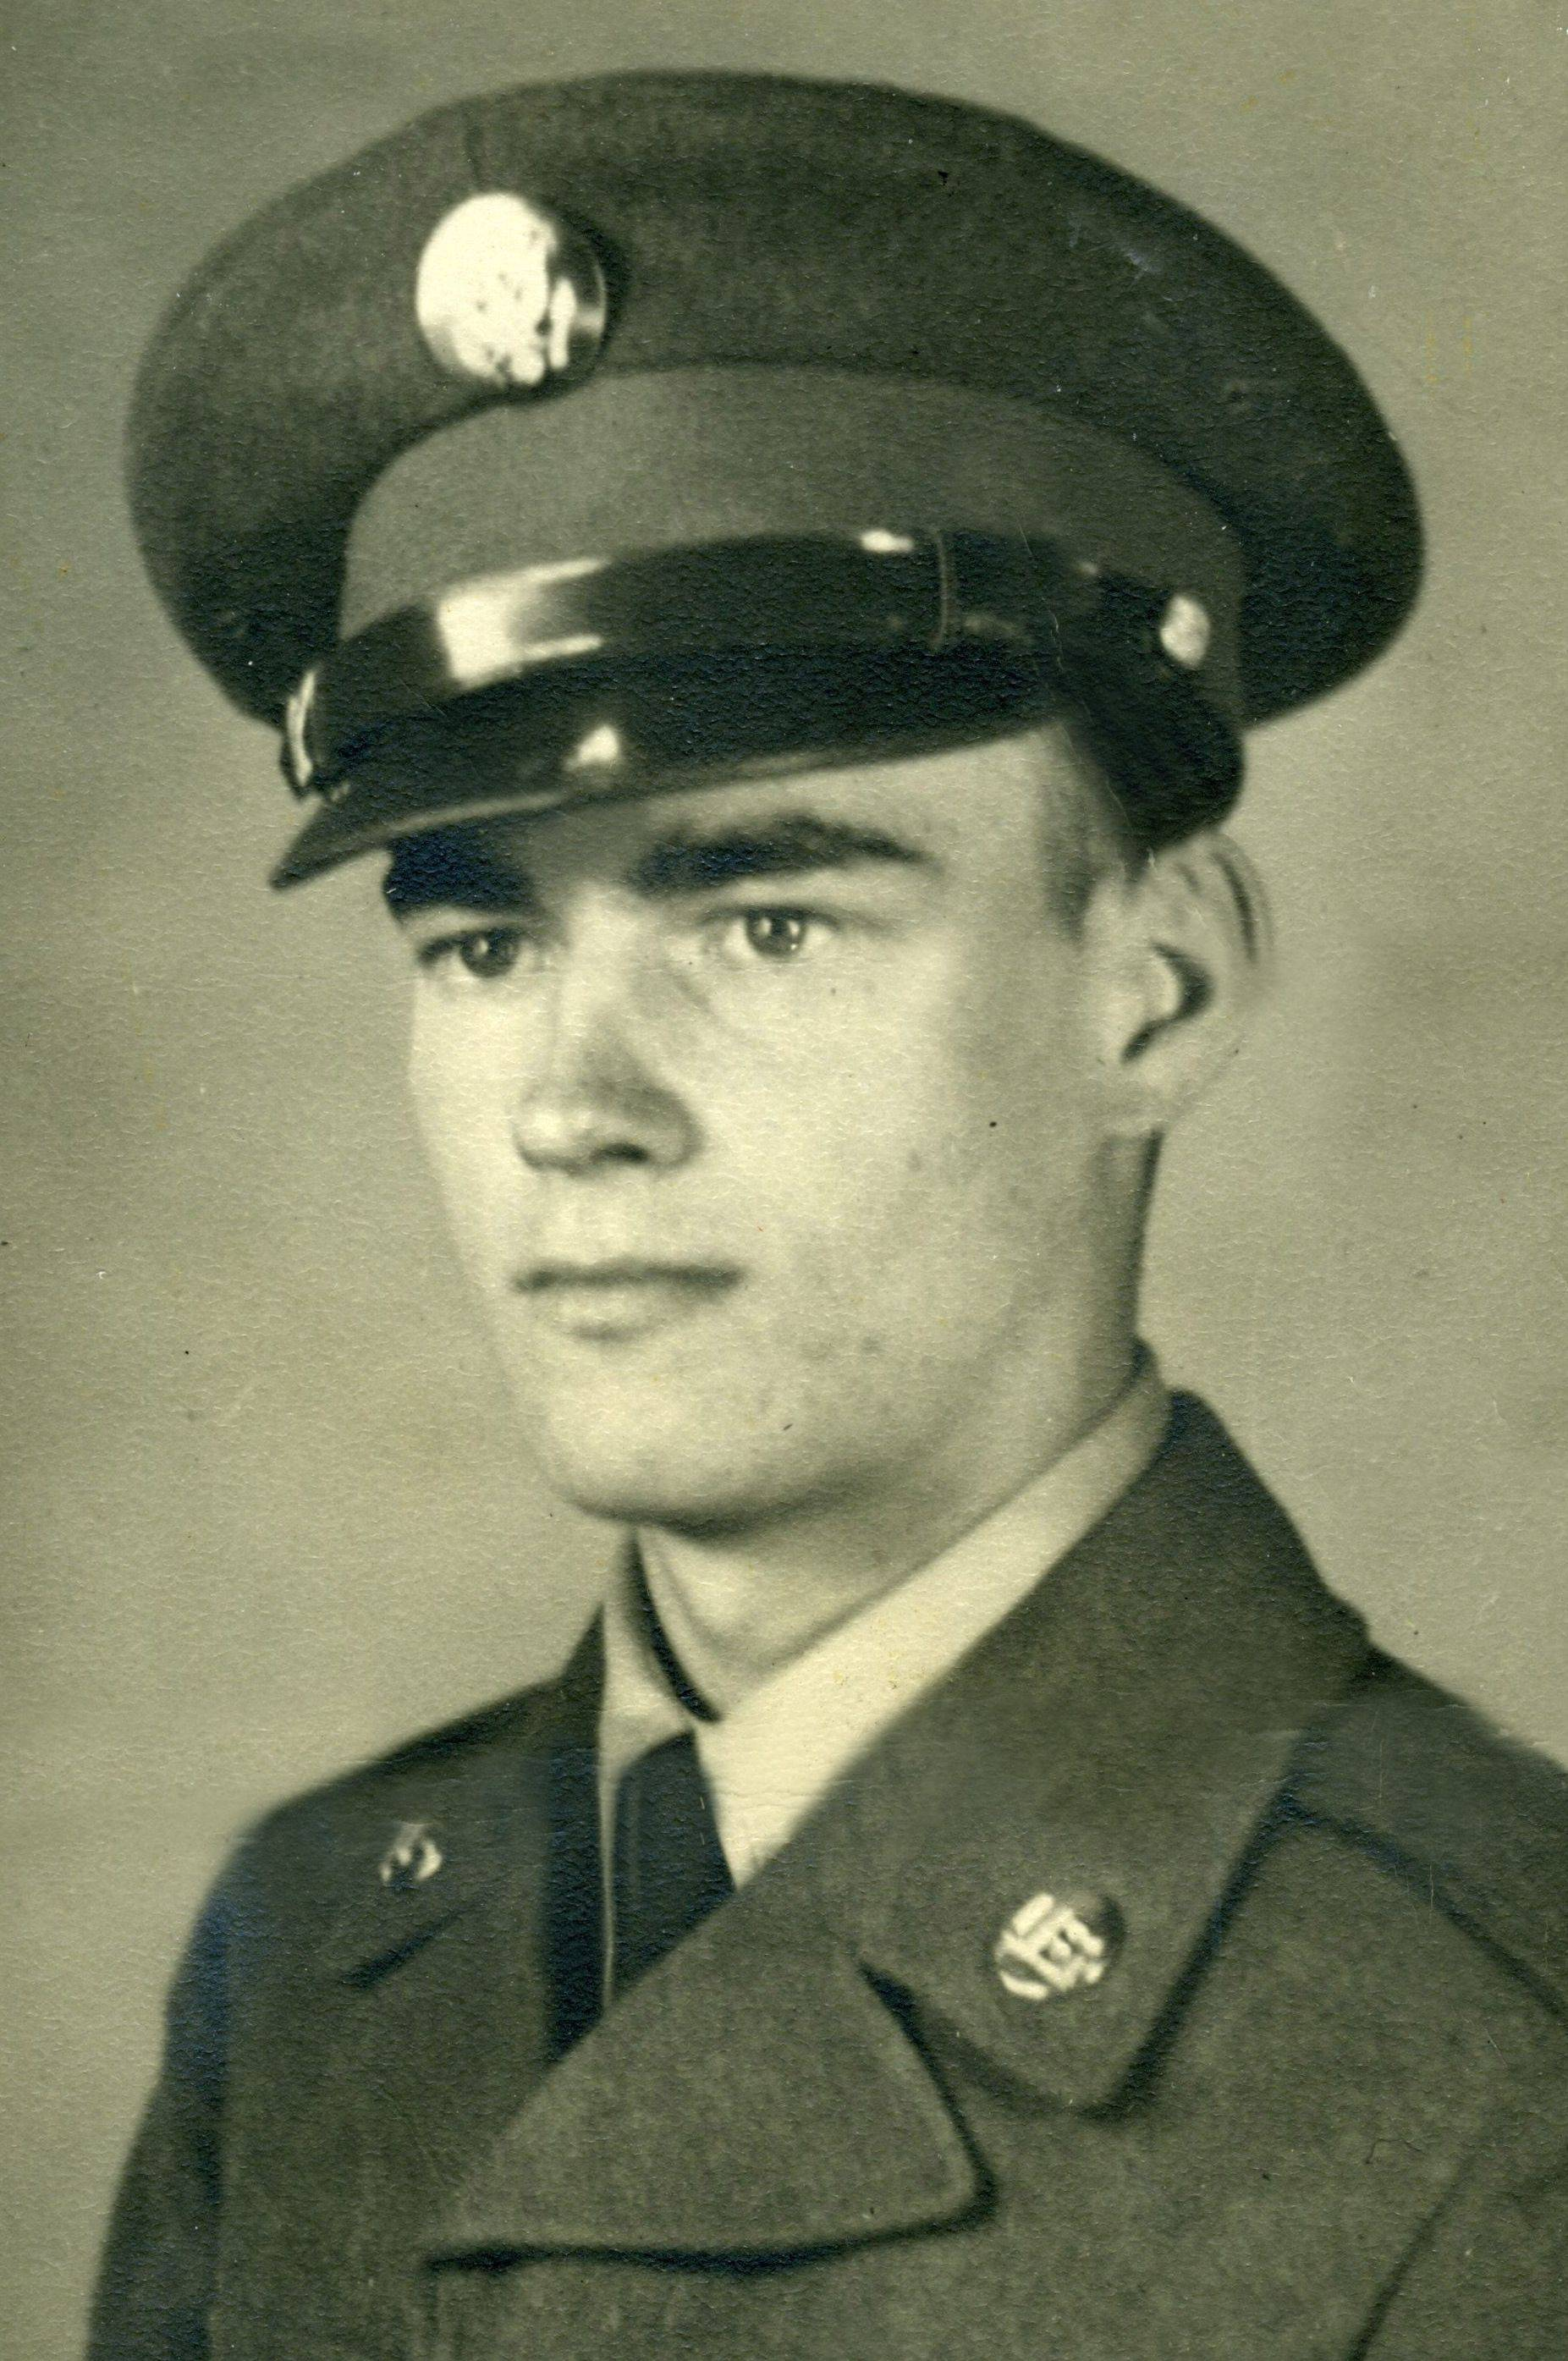 Donald V. MacLean went to the Korean War as a private first class in 1950.